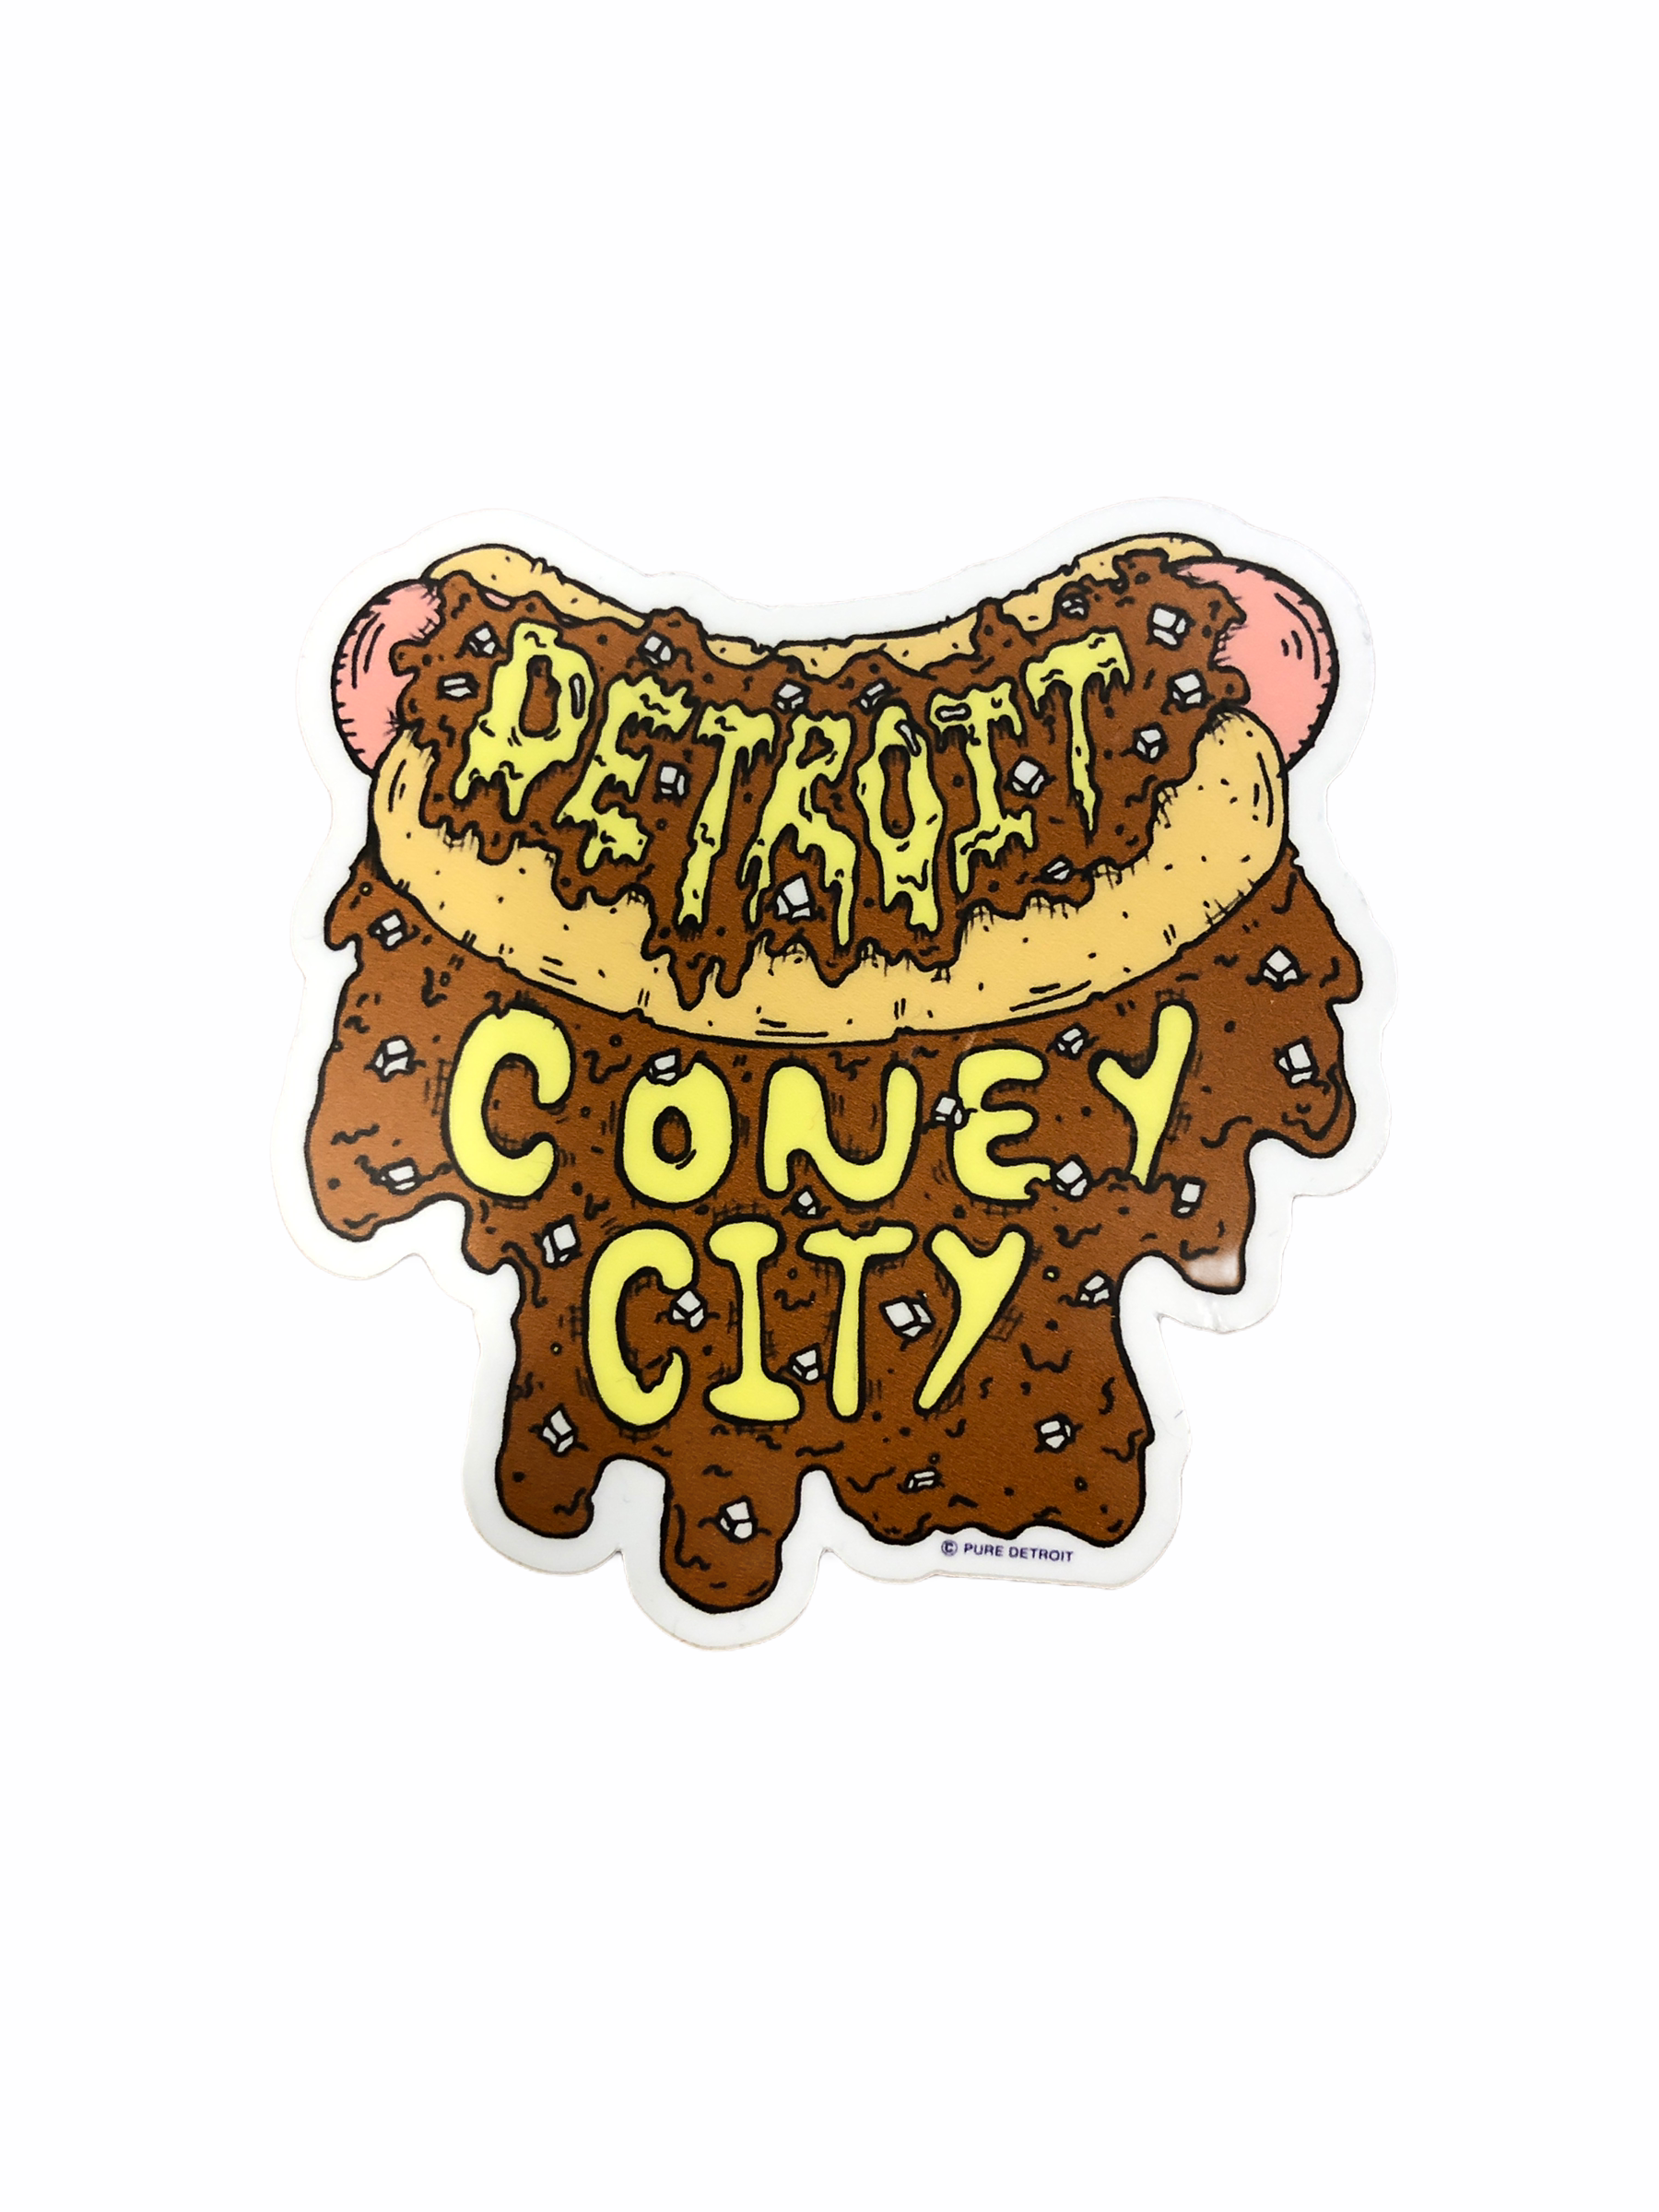 Detroit Coney City Decal - Pure Detroit